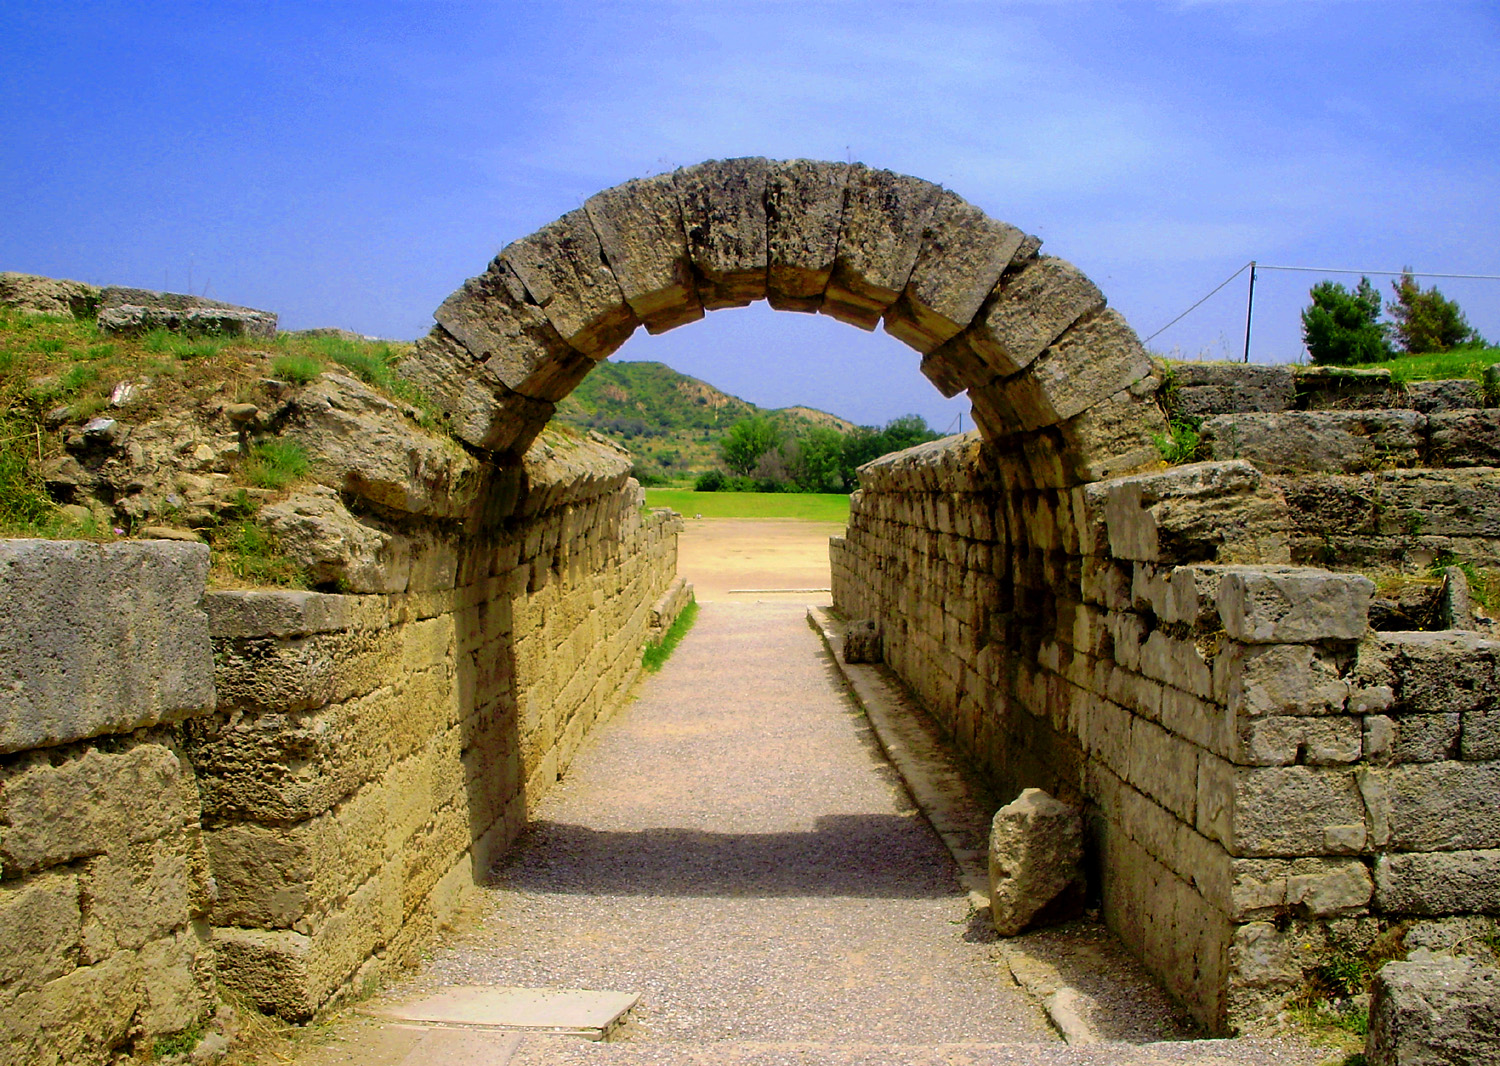 File:The entrance of the stadium in Ancient Olympia, Greece - panoramio.jpg  - Wikimedia Commons